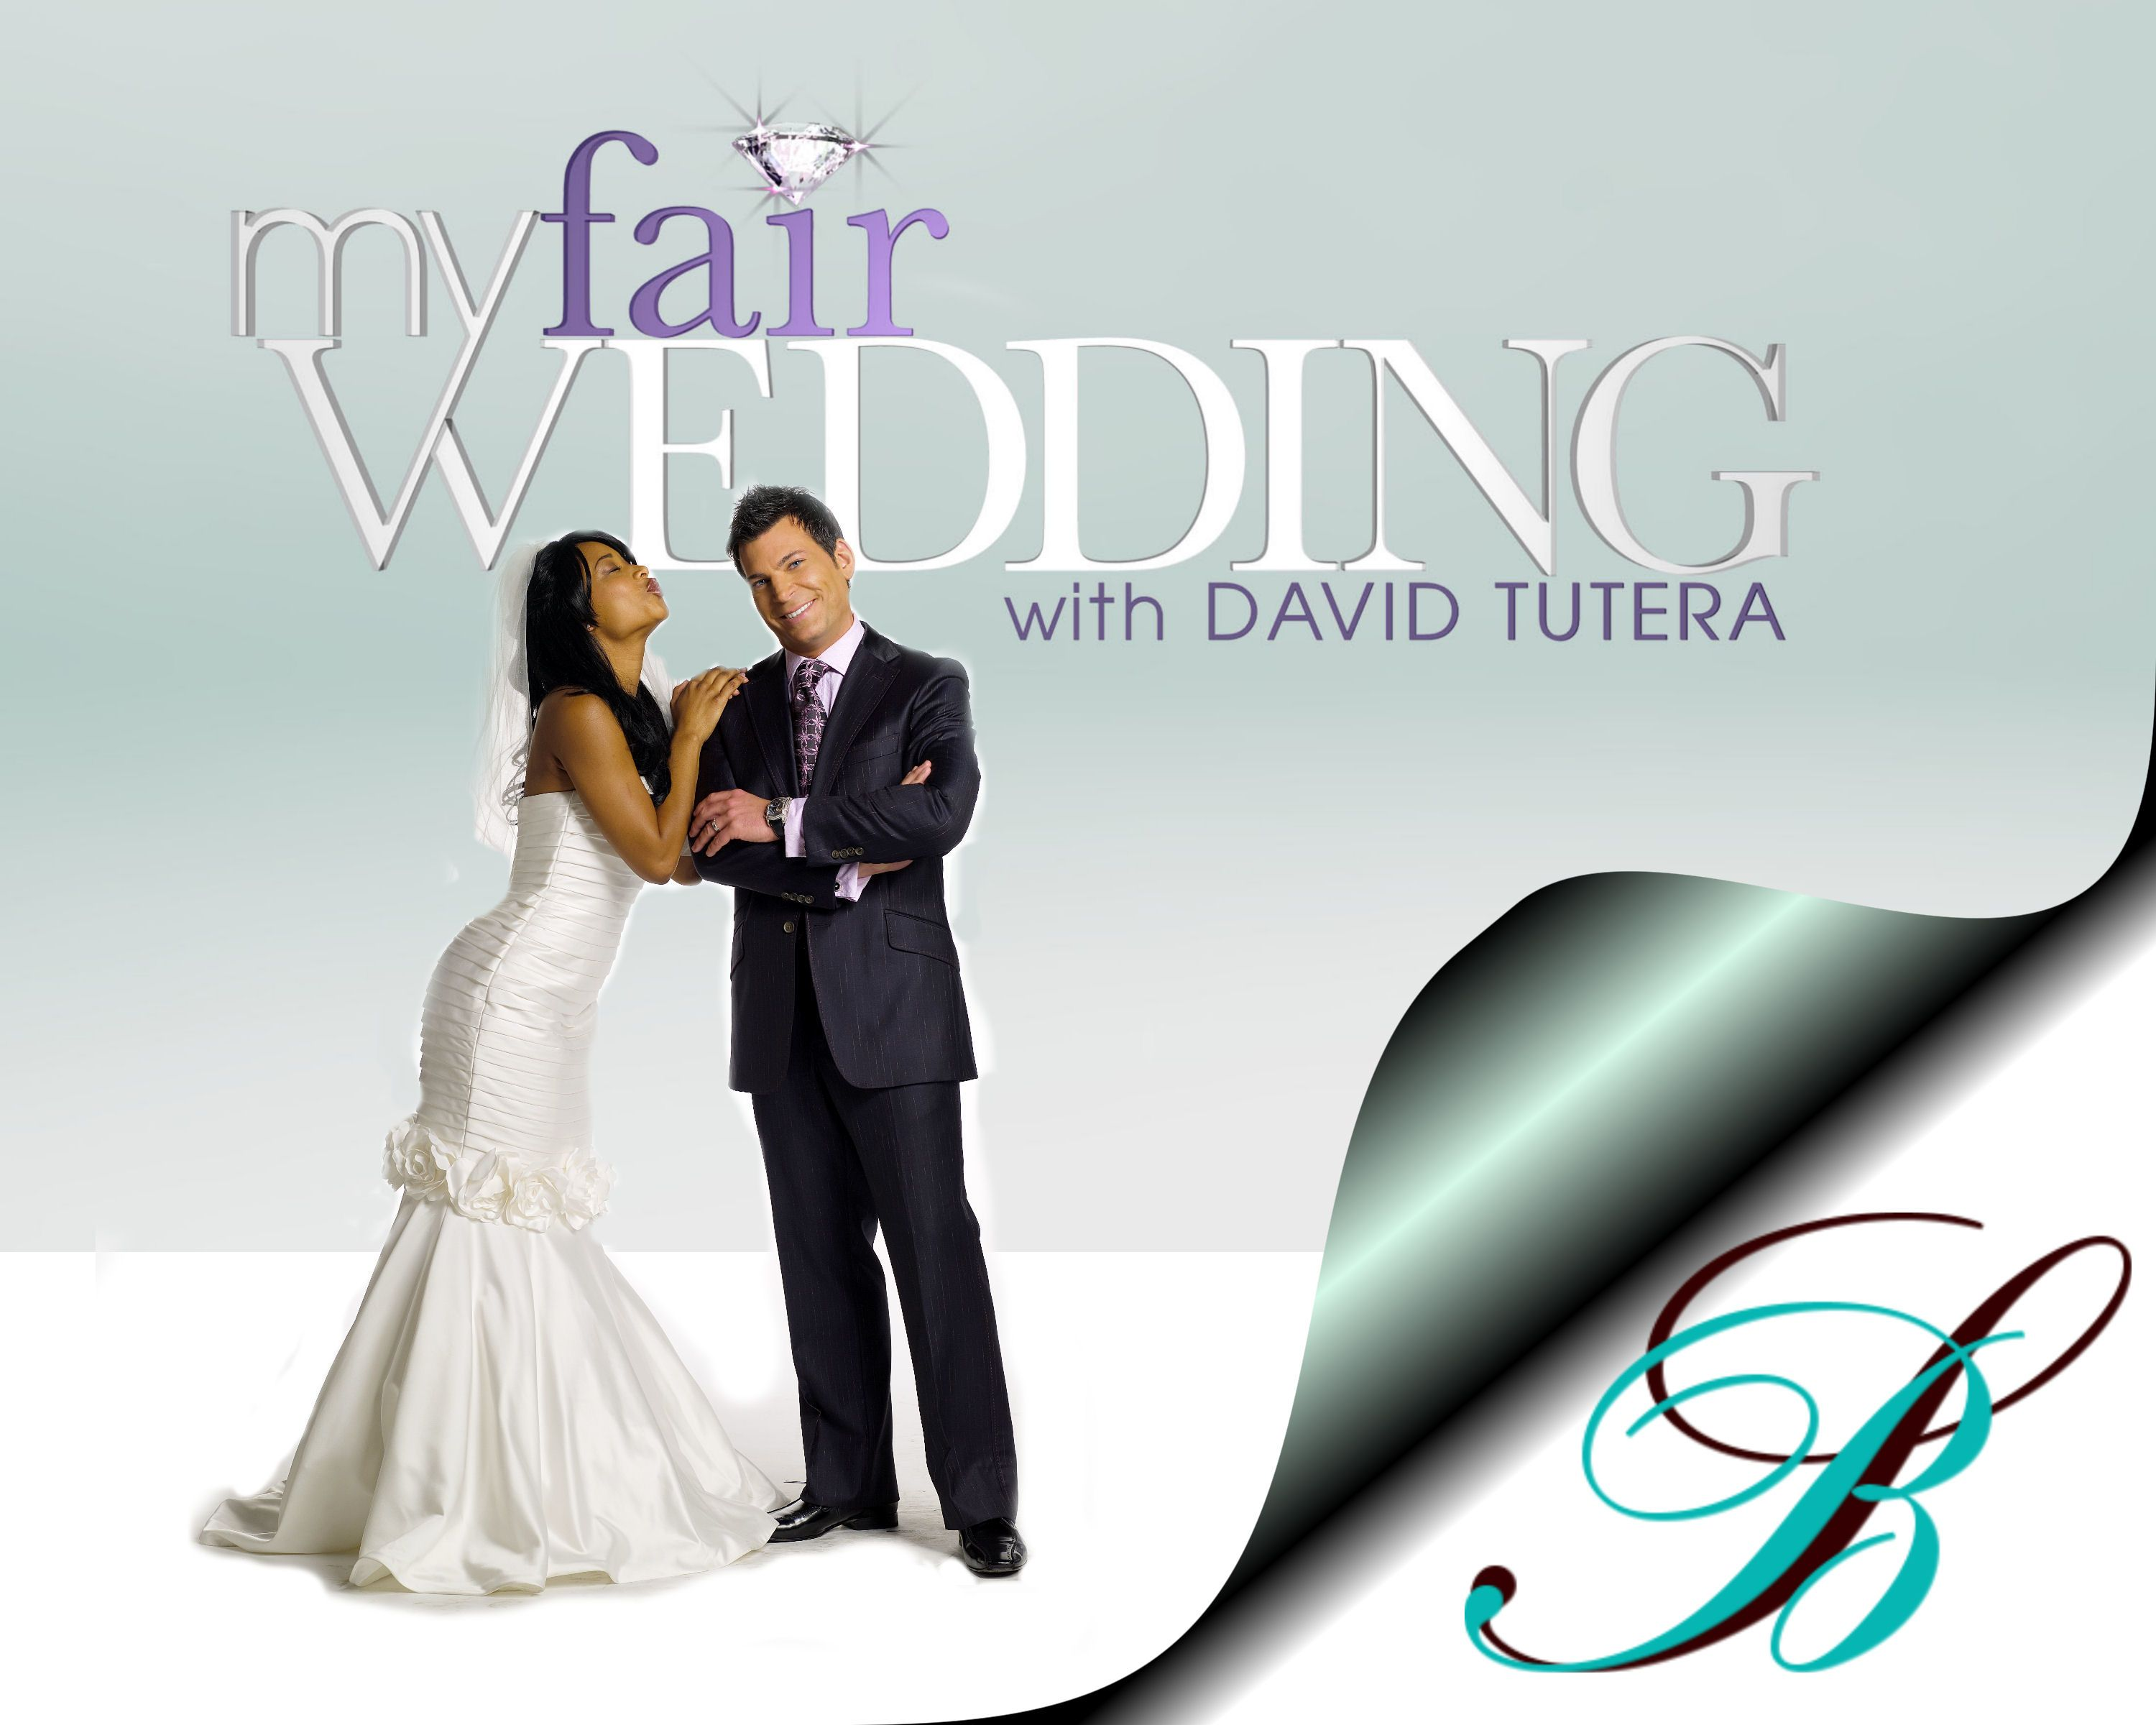 David tutera wedding giveaway